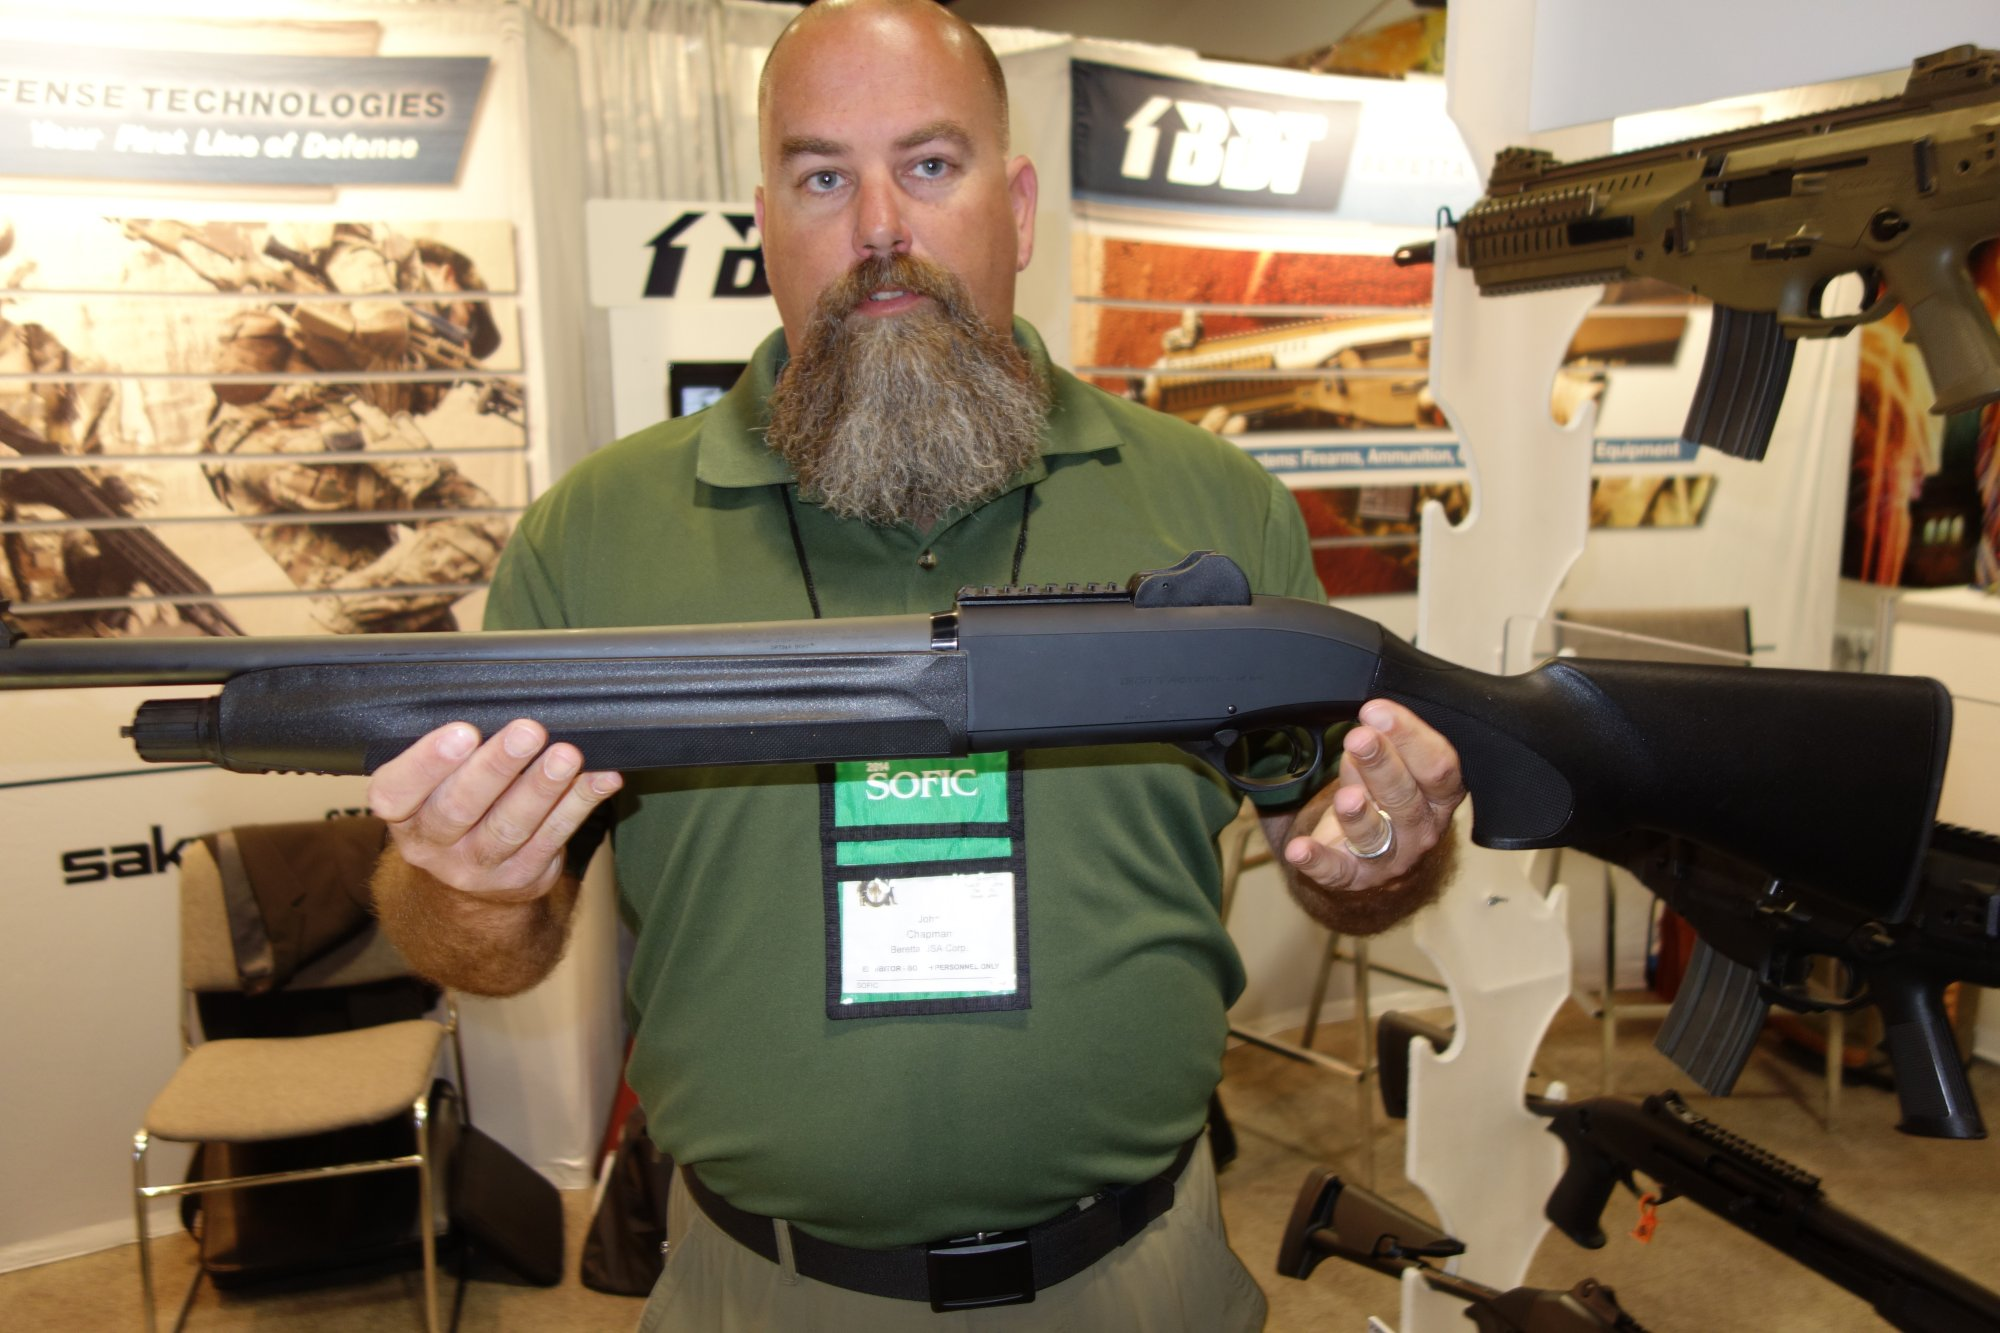 Beretta 1301 Tactical 12 Gauge Semi Auto Combat Tactical Shotgun John Chappie Chapman Beretta Defense Technologies BDT SOFIC 2014 David Crane DefenseReview.com DR 2 Beretta 1301 Tactical Gas Operated 12 Gauge Semi Auto Combat/Tactical Shotgun with Super Fast Blink Action: From Competition to Combat! (Video!)